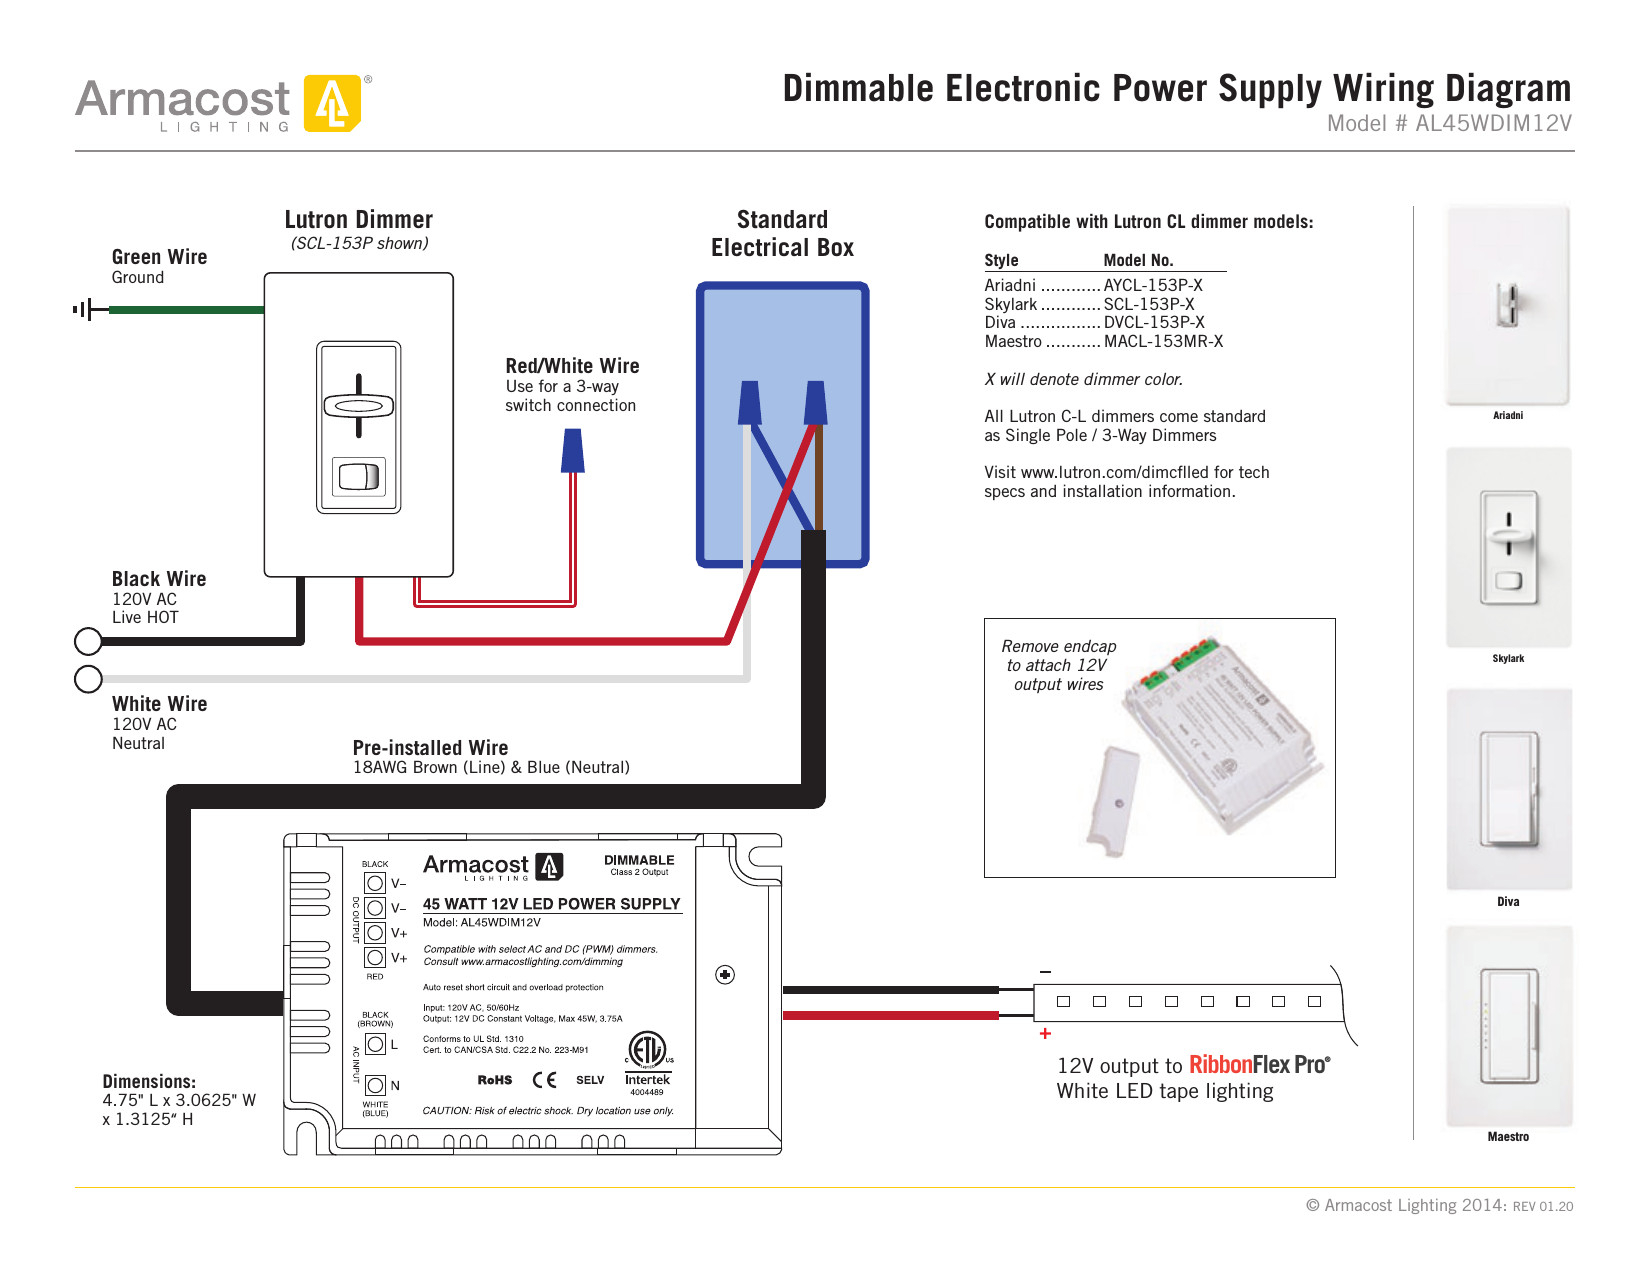 lutron single pole dimmer switch wiring diagram Collection-Lutron Led Dimmer Switch Wiring Diagram Beautiful Lutron Dimmer Switch Troubleshooting Gallery Free 13-g